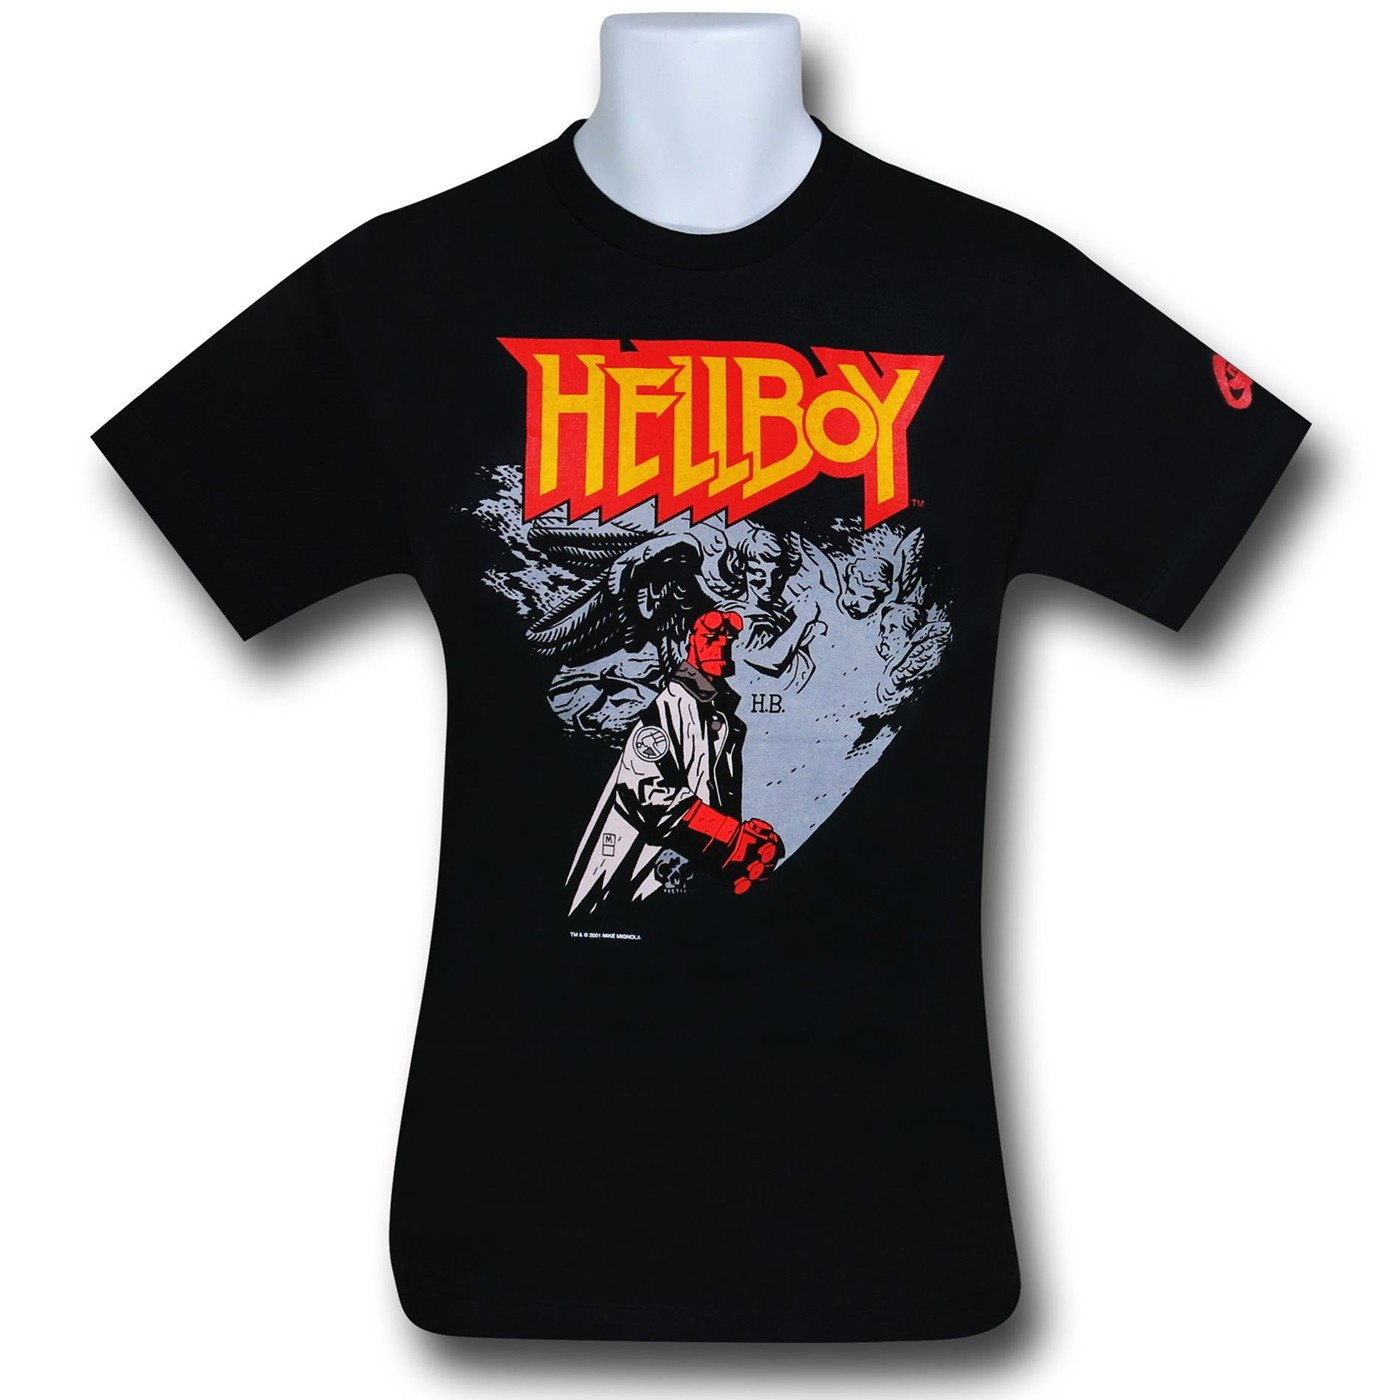 Hellboy II T-Shirt